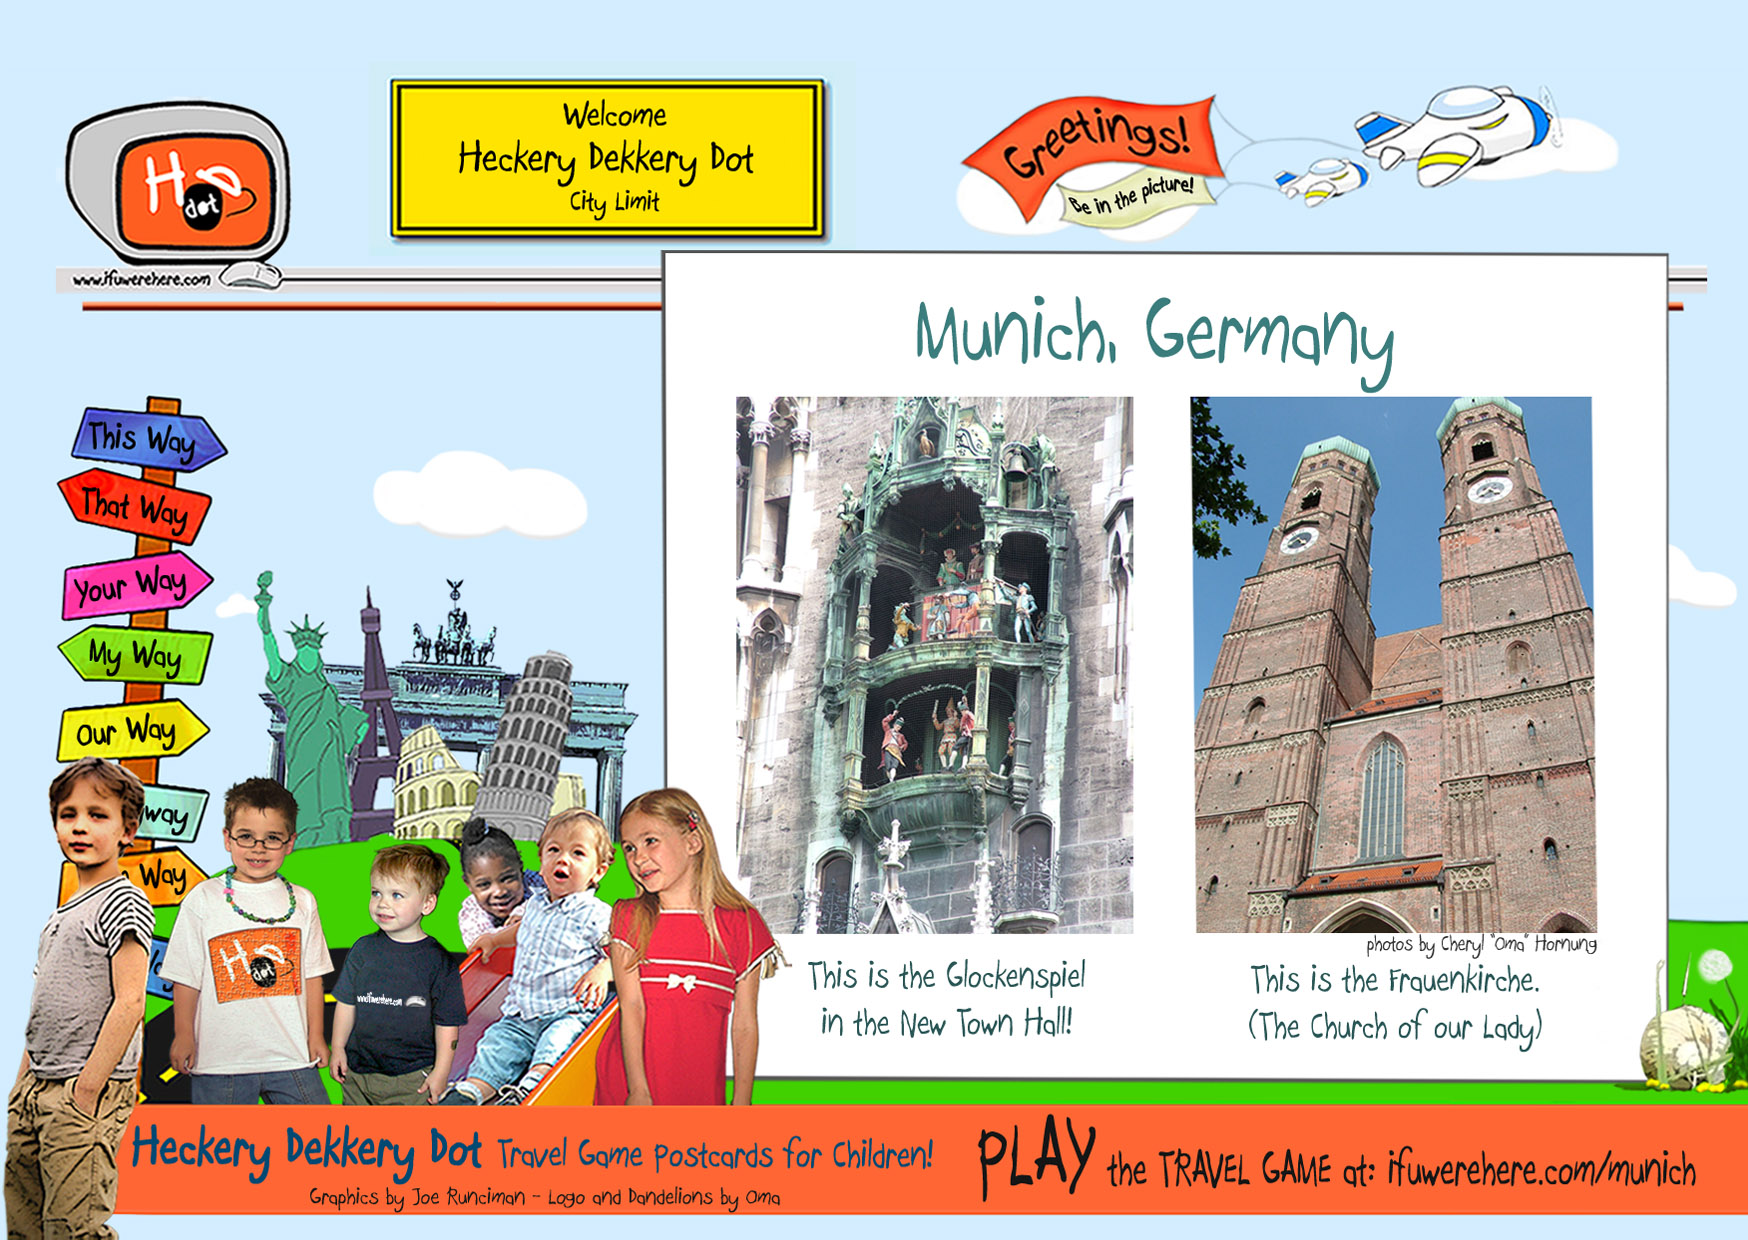 (1) How much do you know about Munich, Germany?